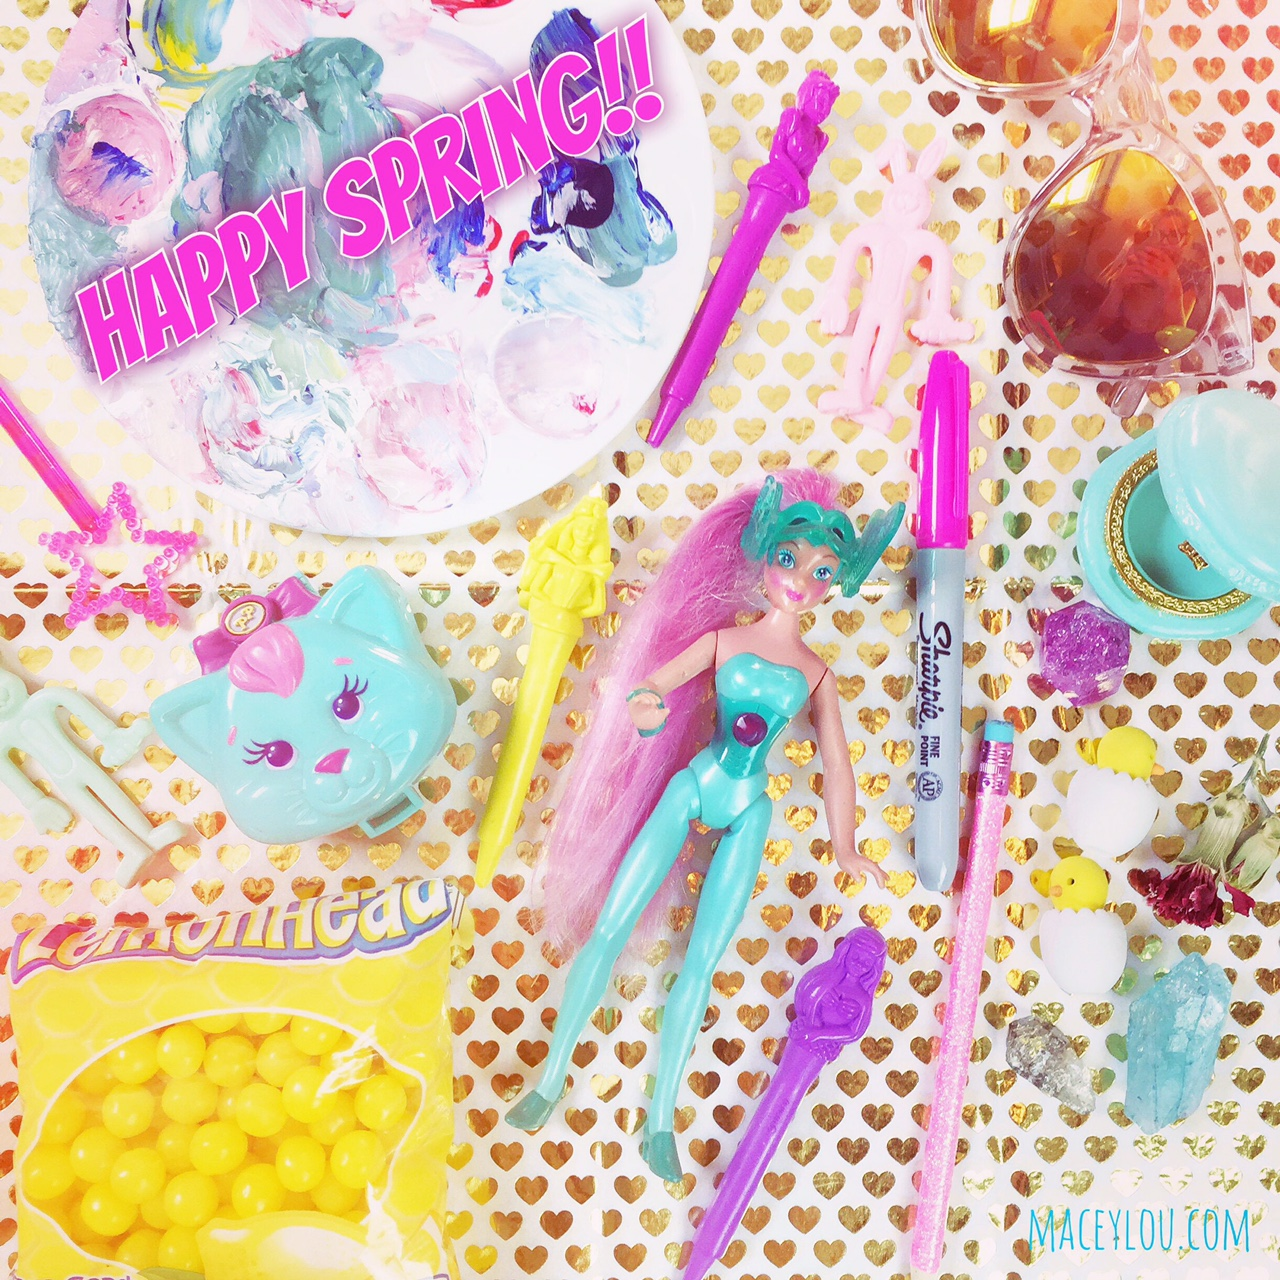 I posted this on Instagram this morning to celebrate spring and kawaii cute things...<3